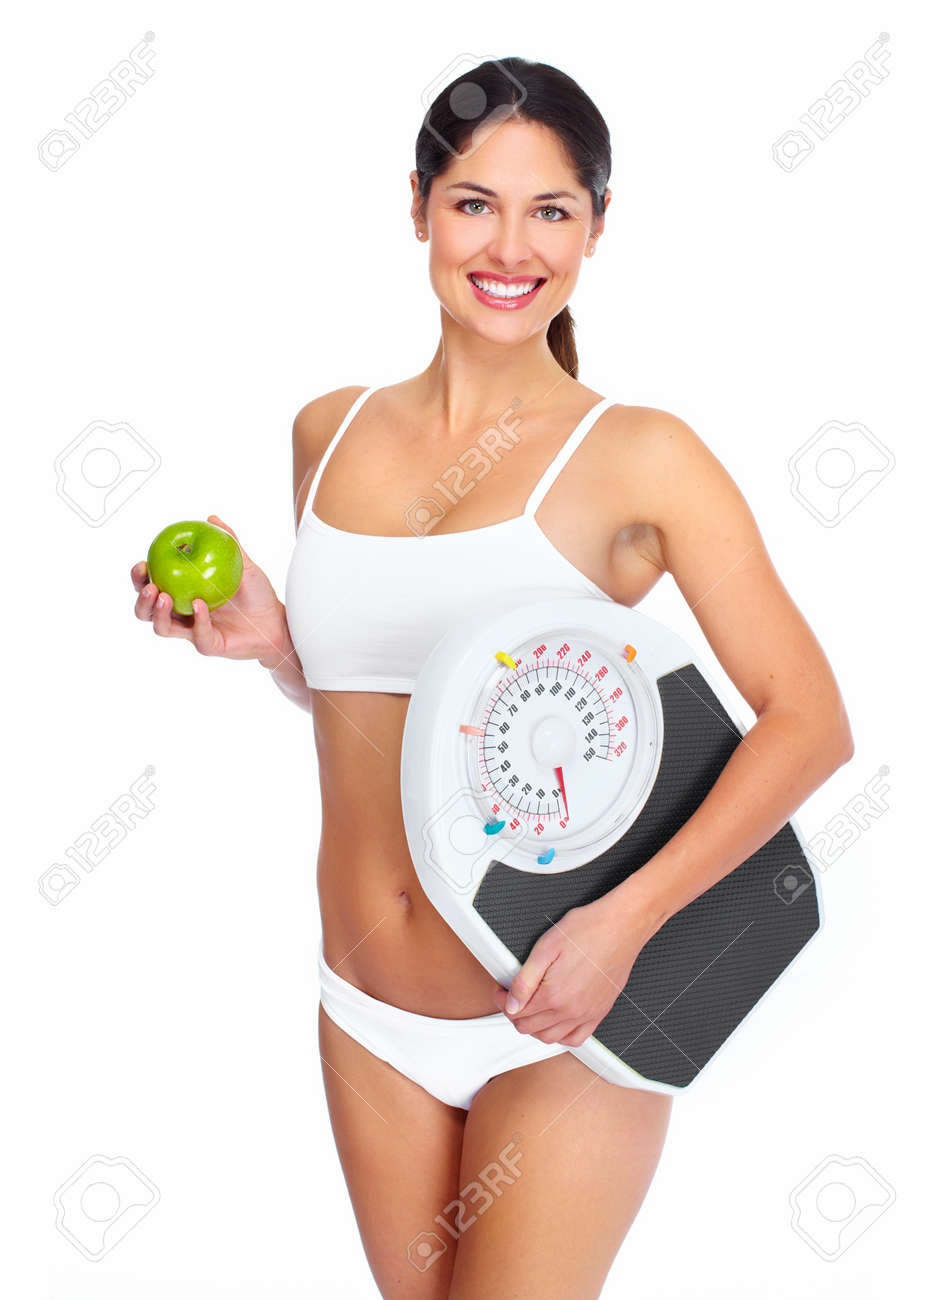 Beautiful young healthy woman. Diet. Isolated on white background. Stock Photo - 16958987